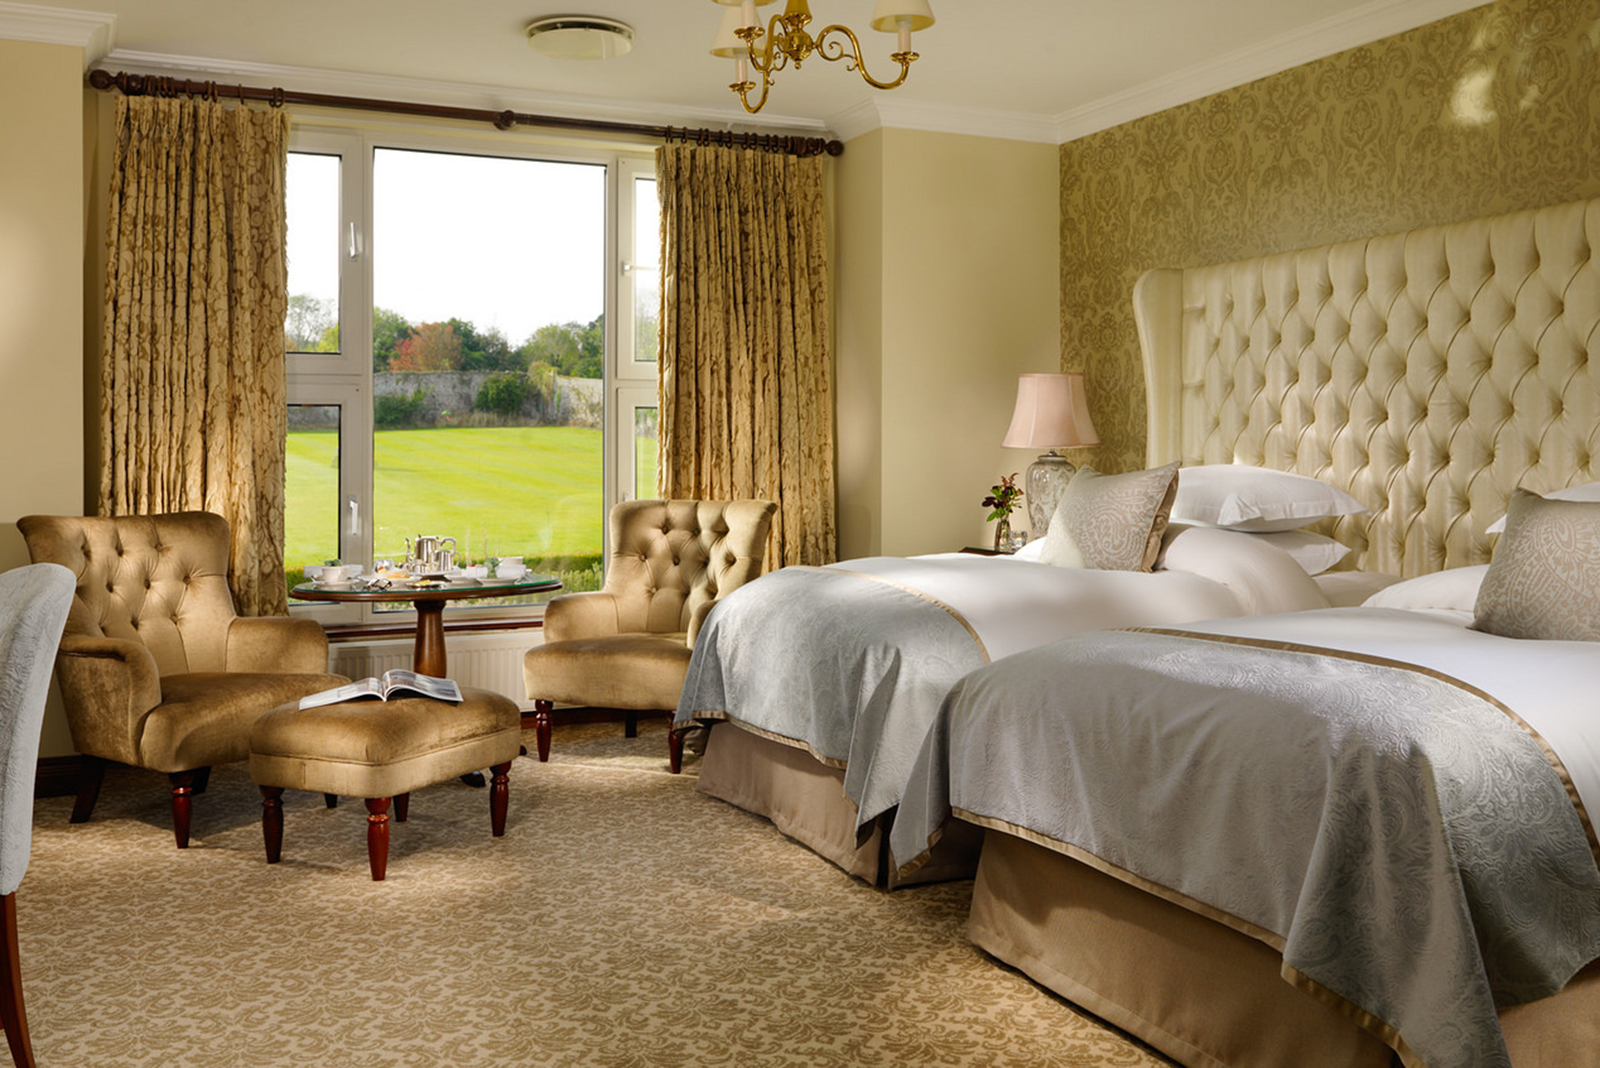 Millimetre Design-The Malton Hotel